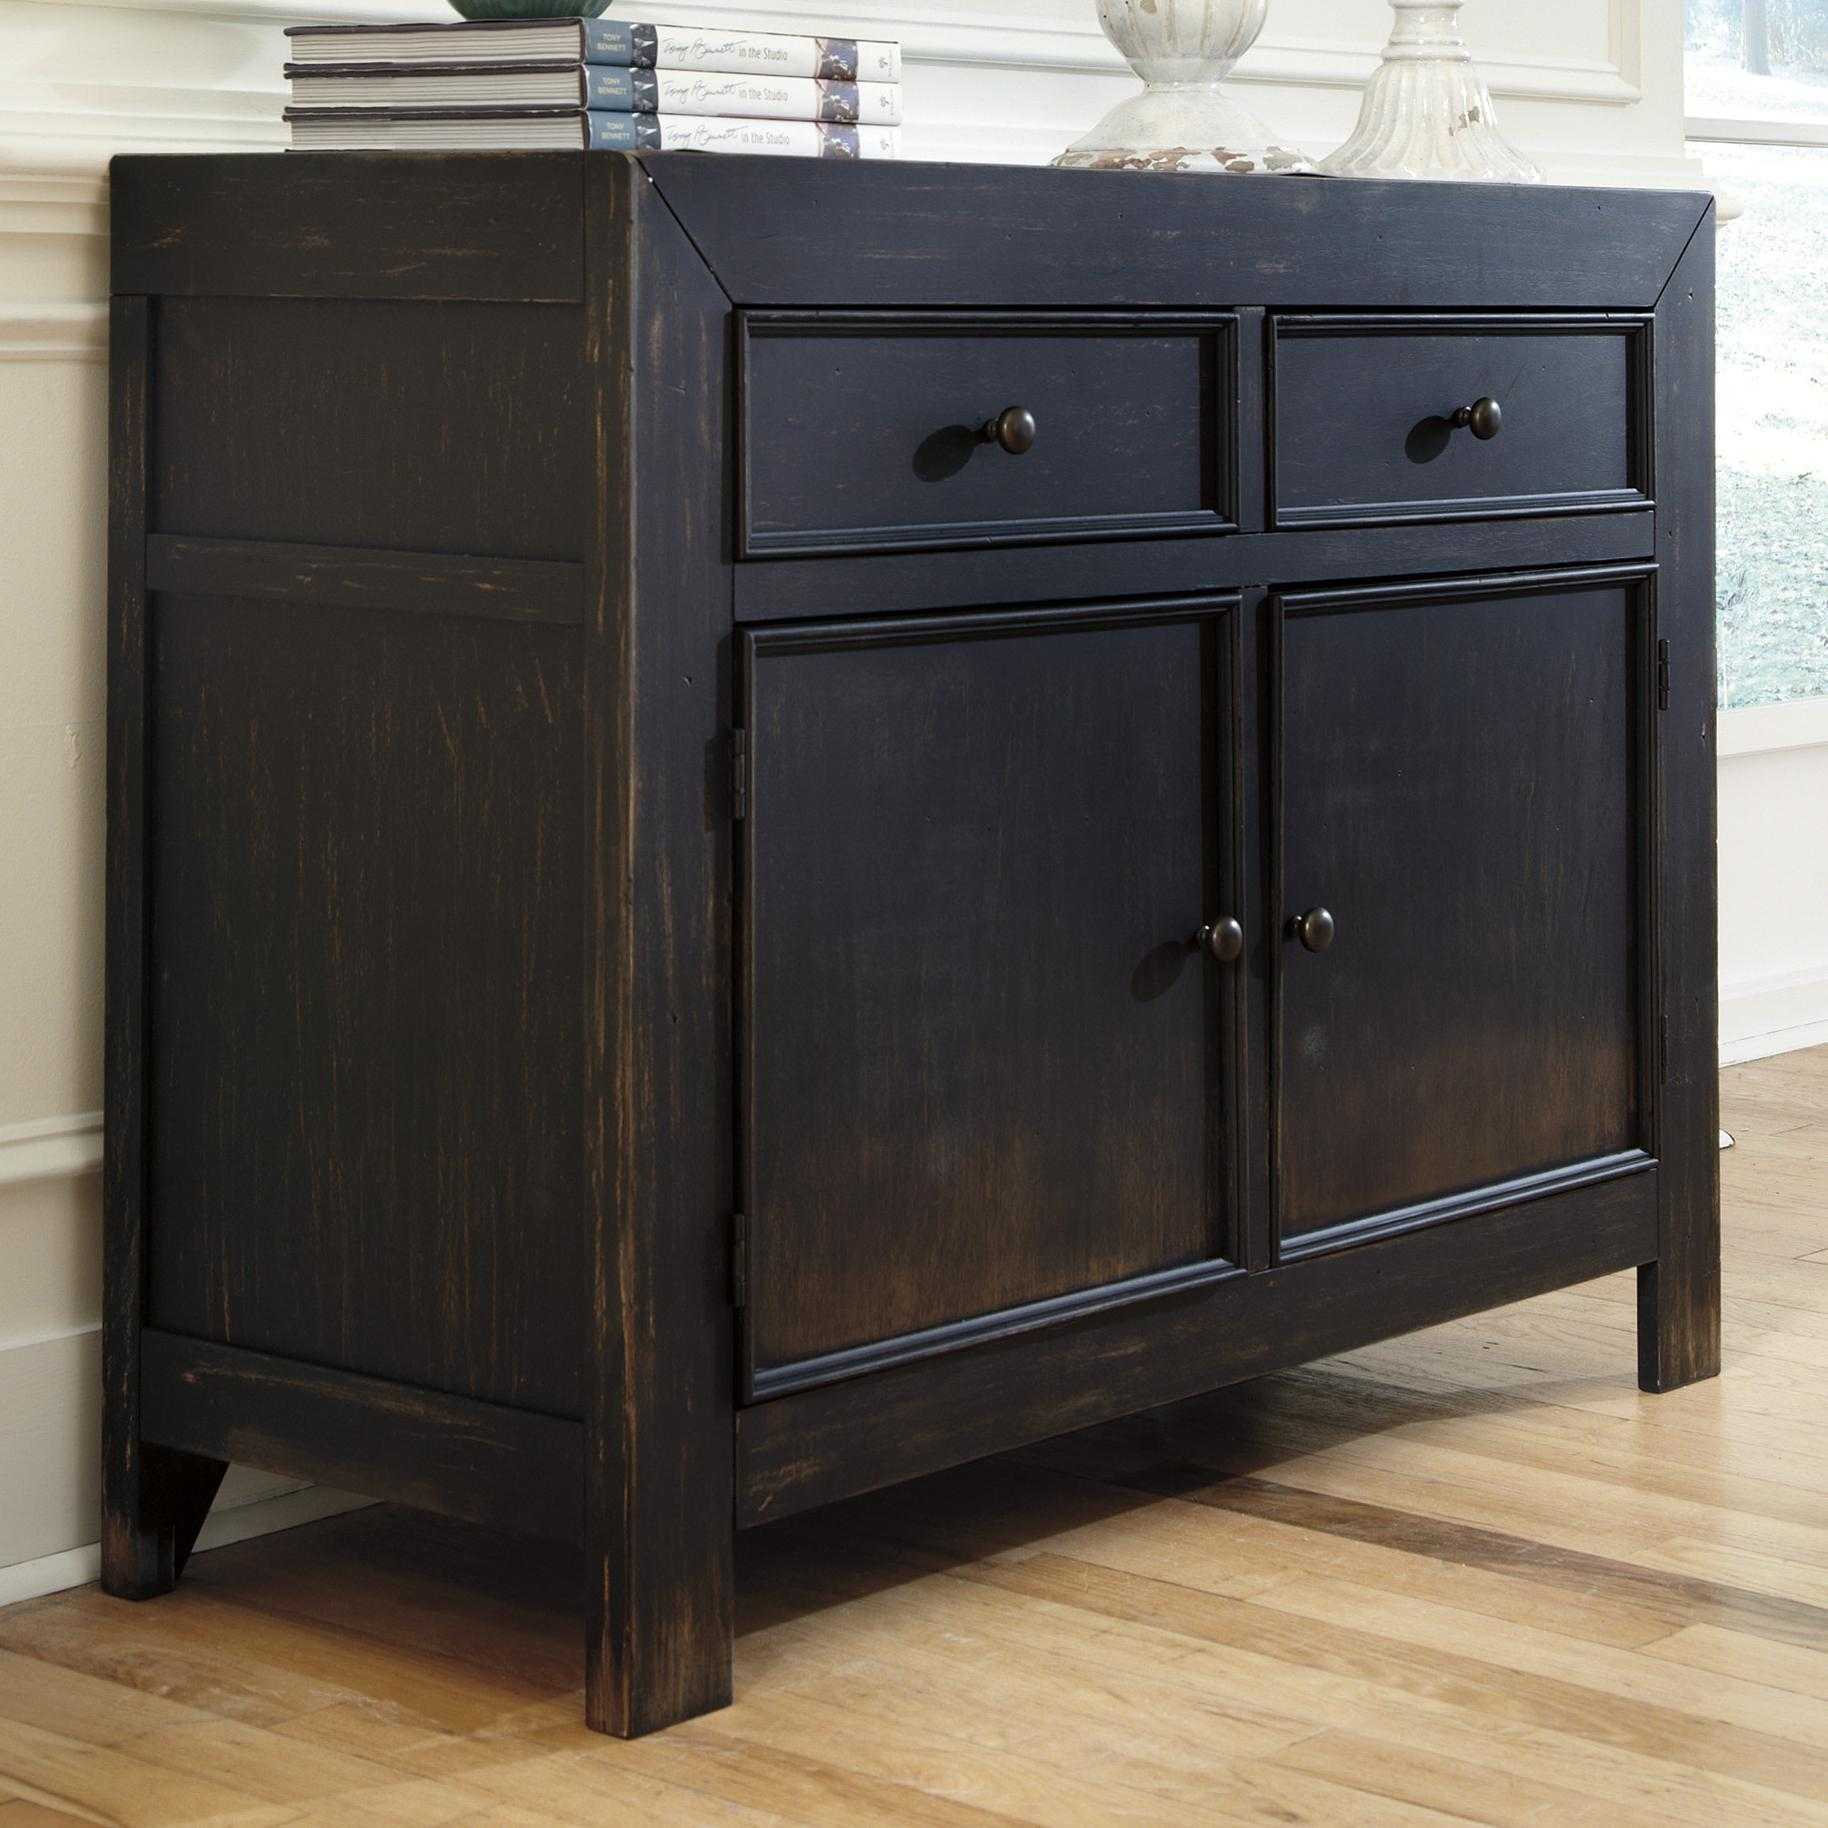 distressed black accent cabinet signature design ashley wolf products color gavelston table patio set covers velvet chair rose gold desk lamp espresso white cube coffee end tables